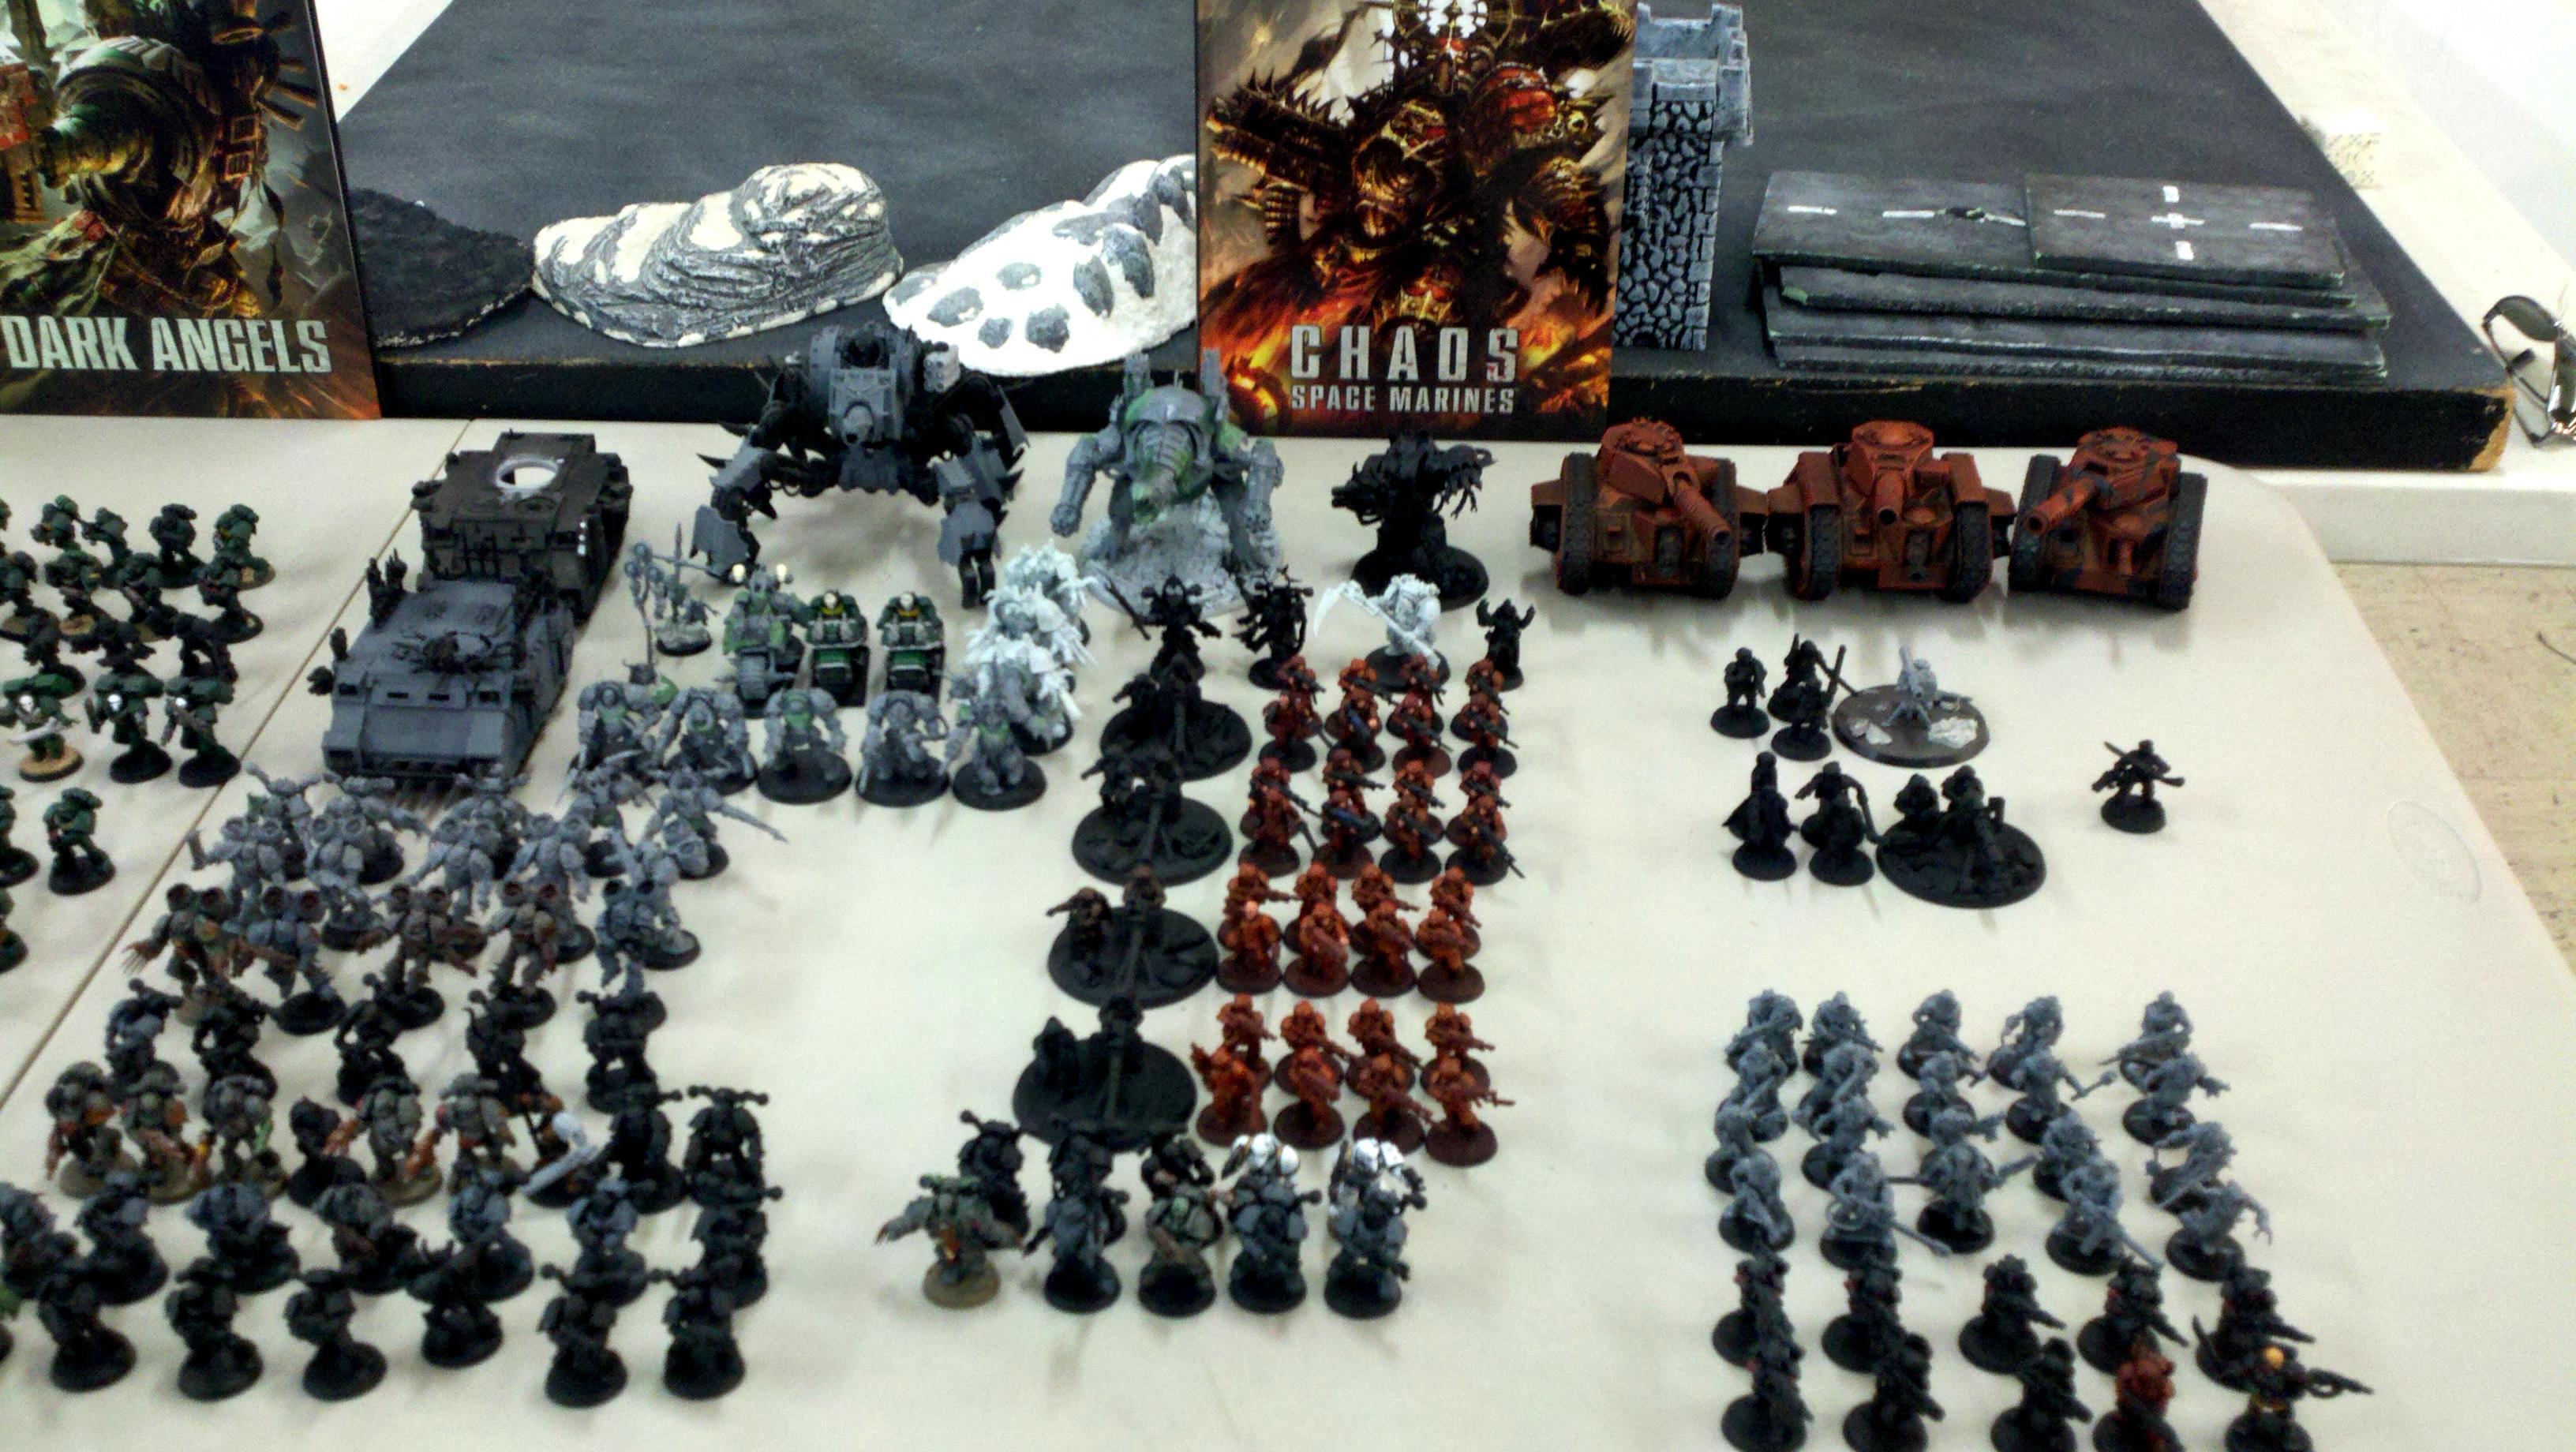 Some chaos and imperial guard